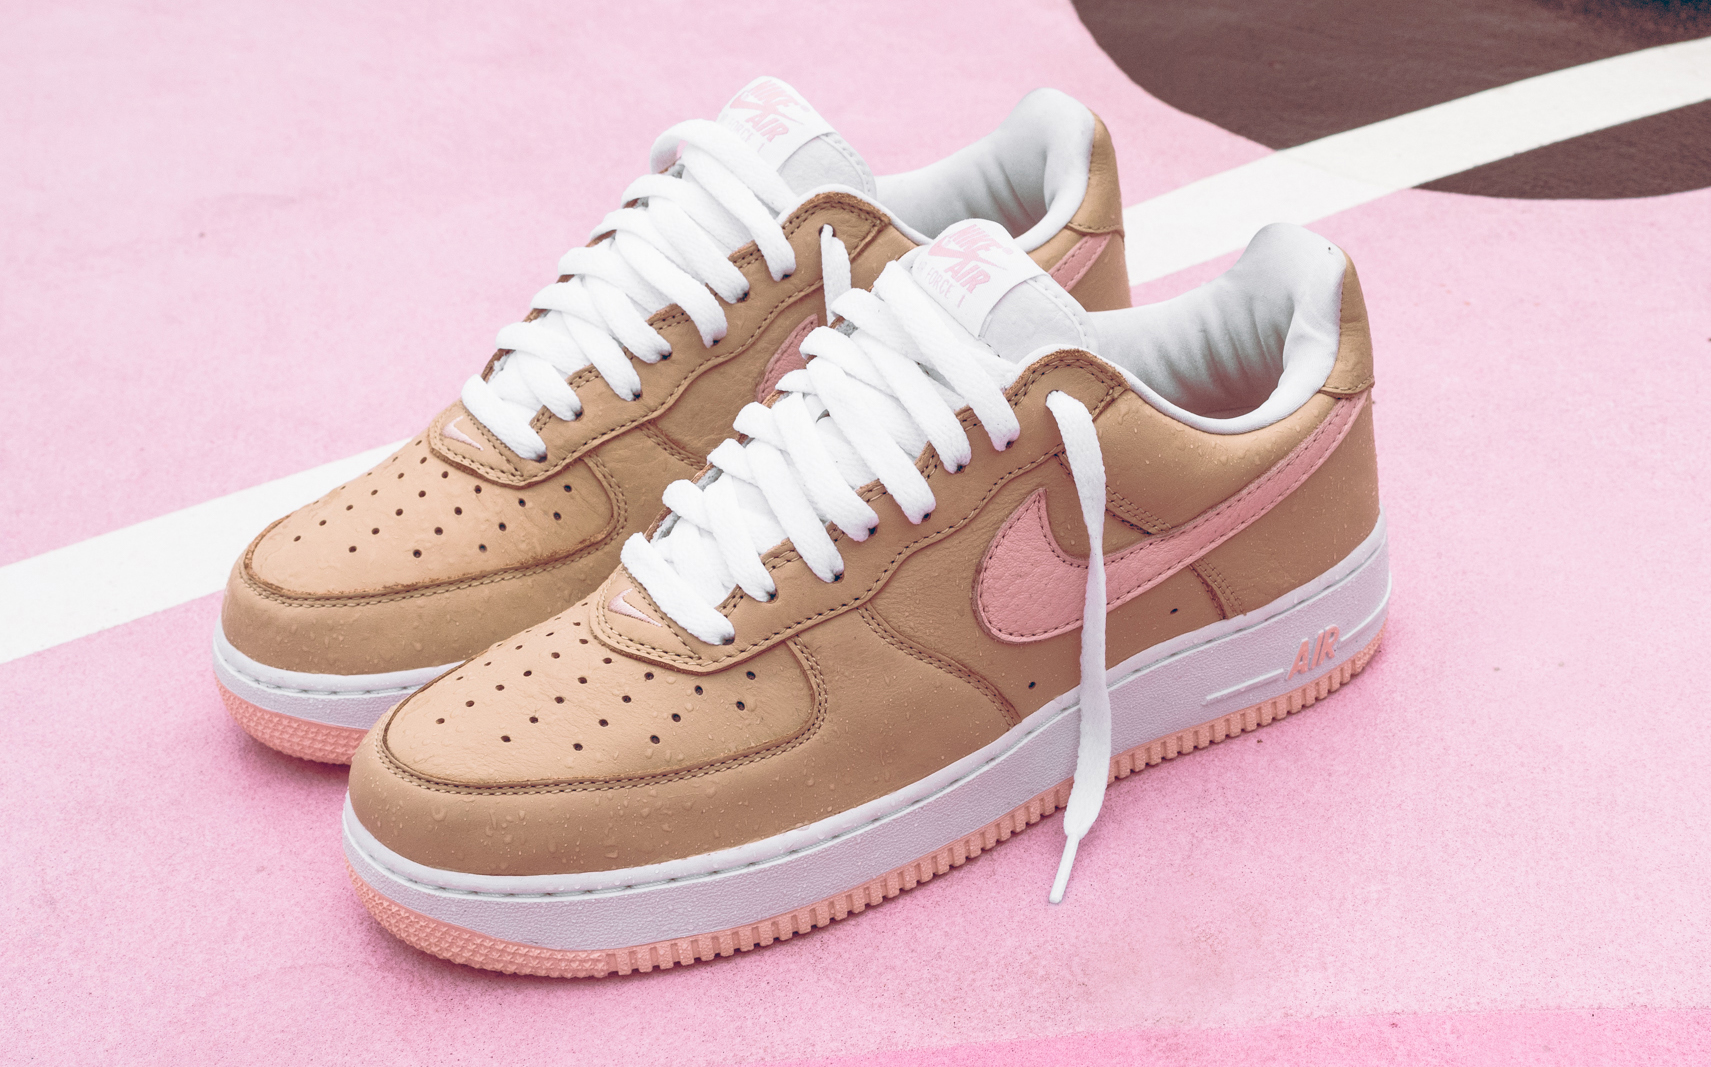 8b159084e64 Linen Nike Air Force 1 Retro Kith Miami | Sole Collector